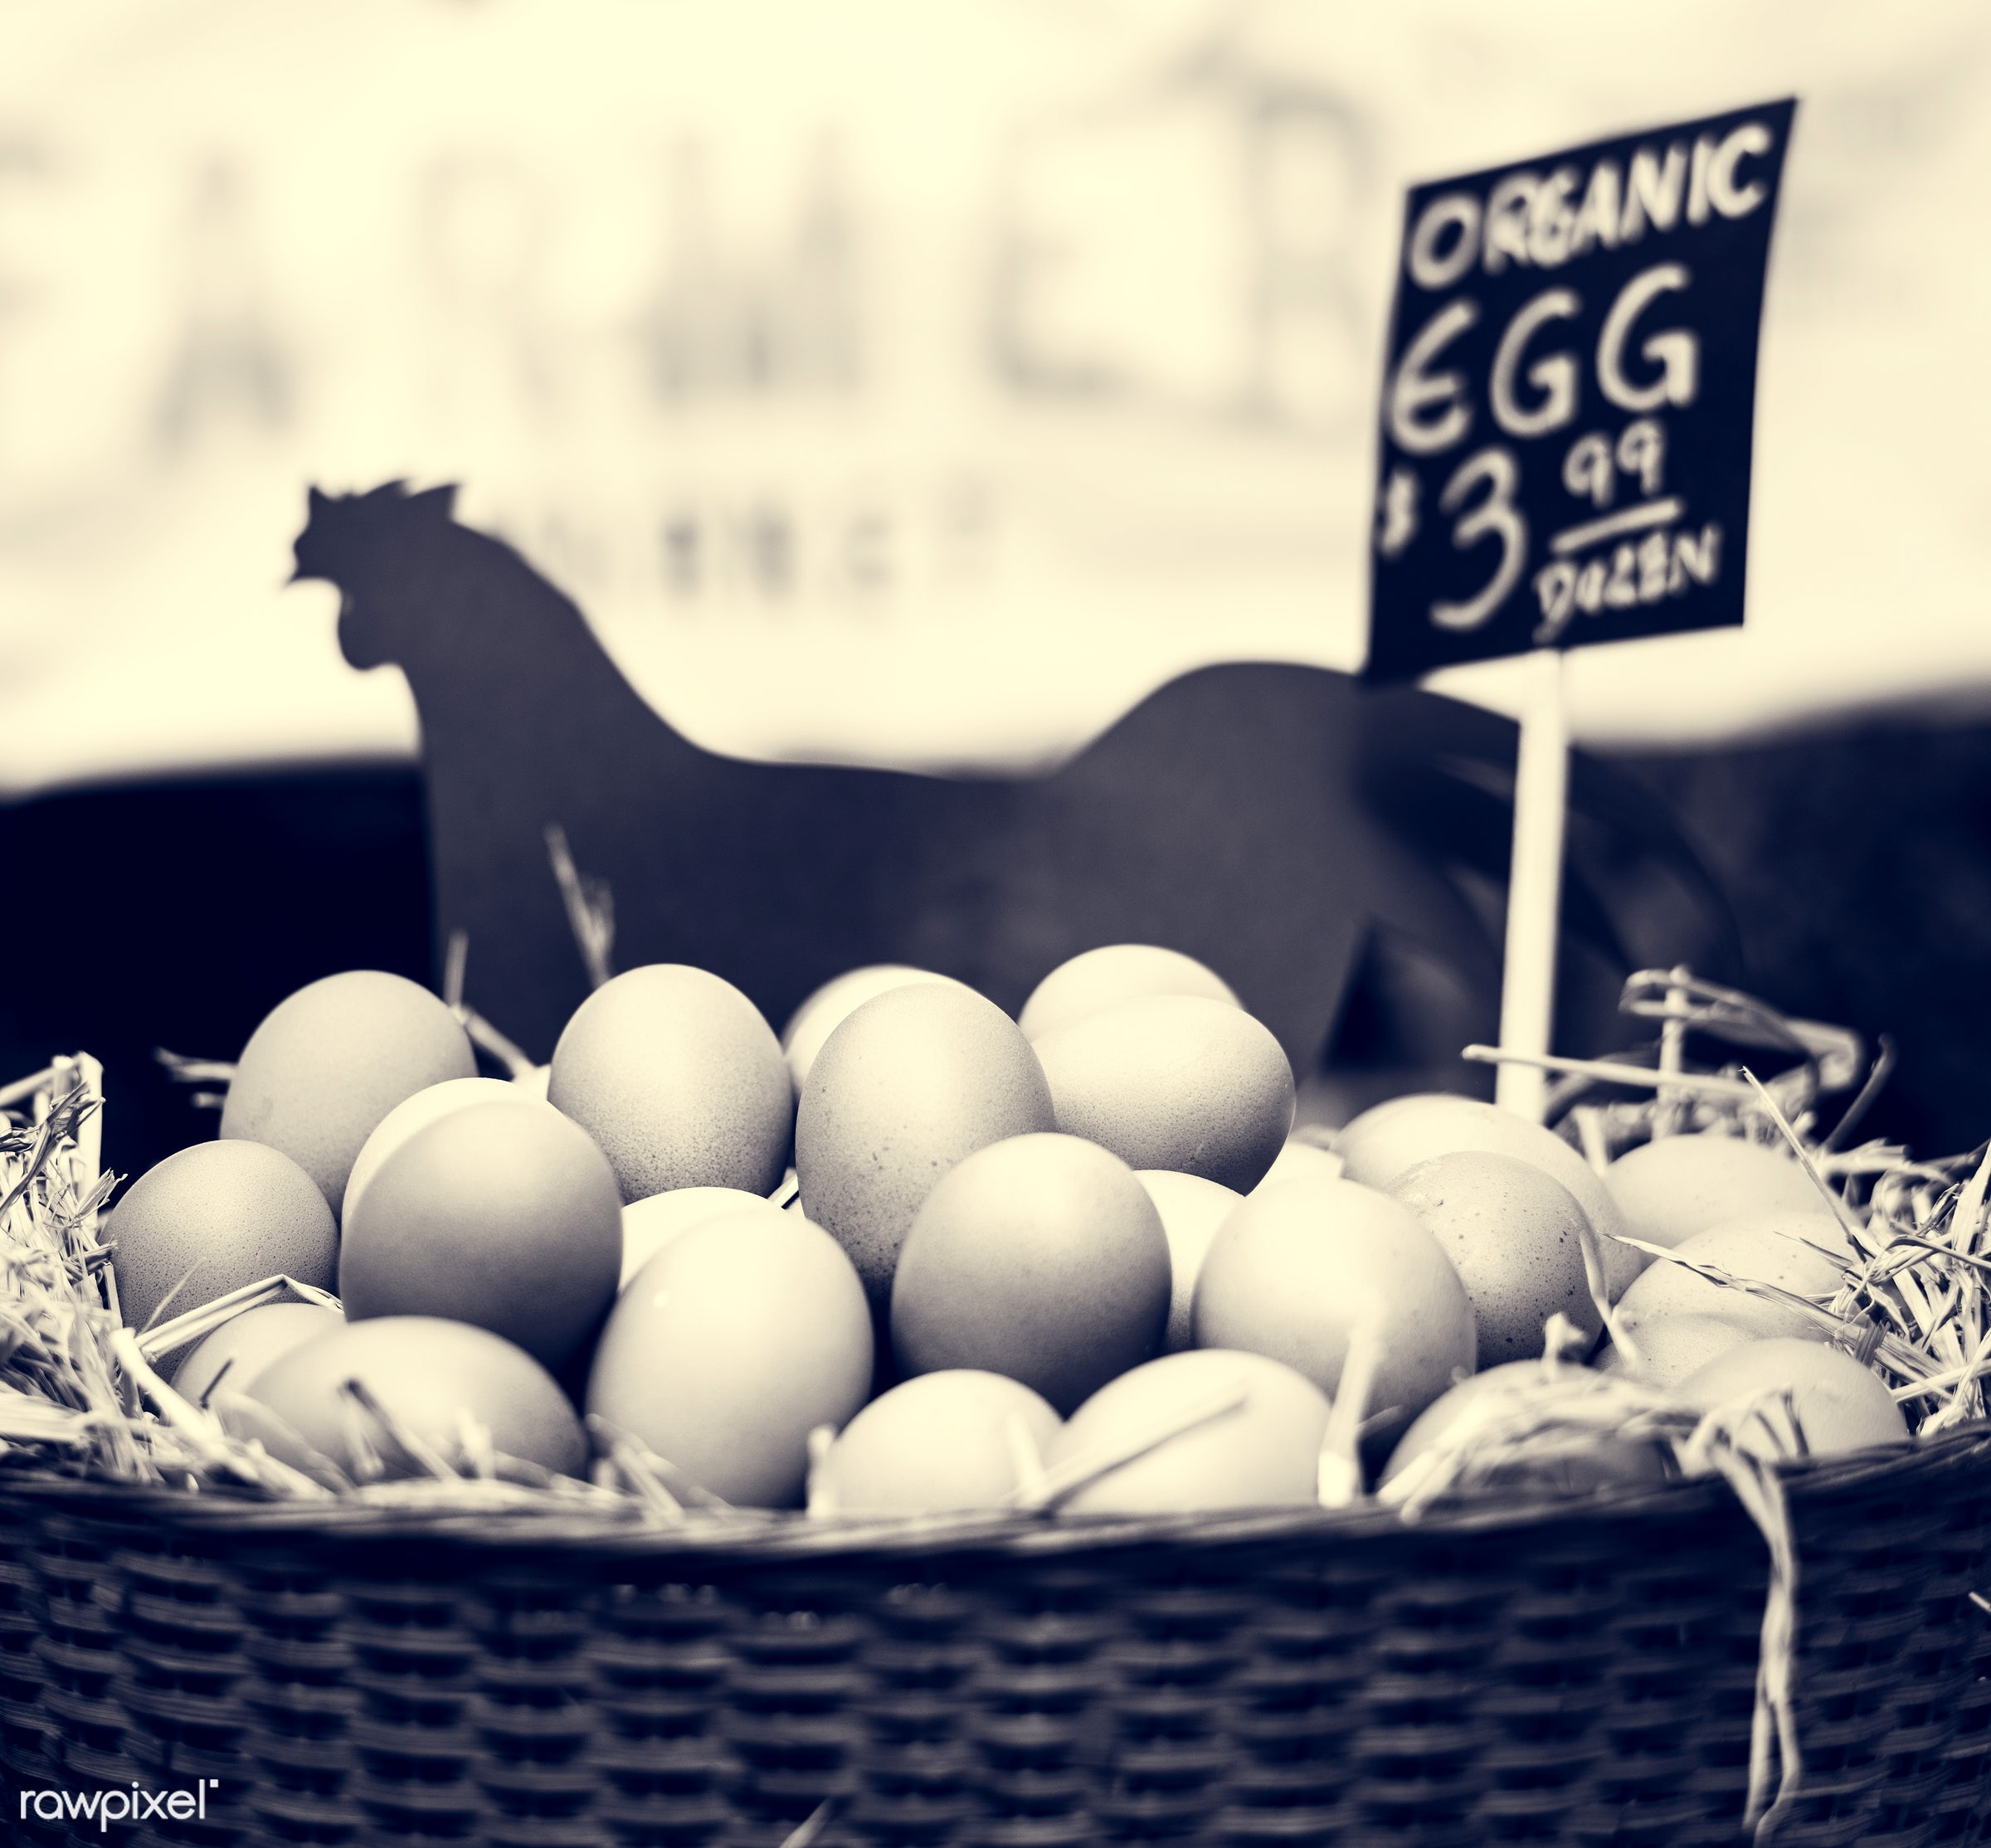 shop, uncooked, cuisine, poultry, round, rooster, house, homemade, farmer, protein, ingredient, oval, selling,...